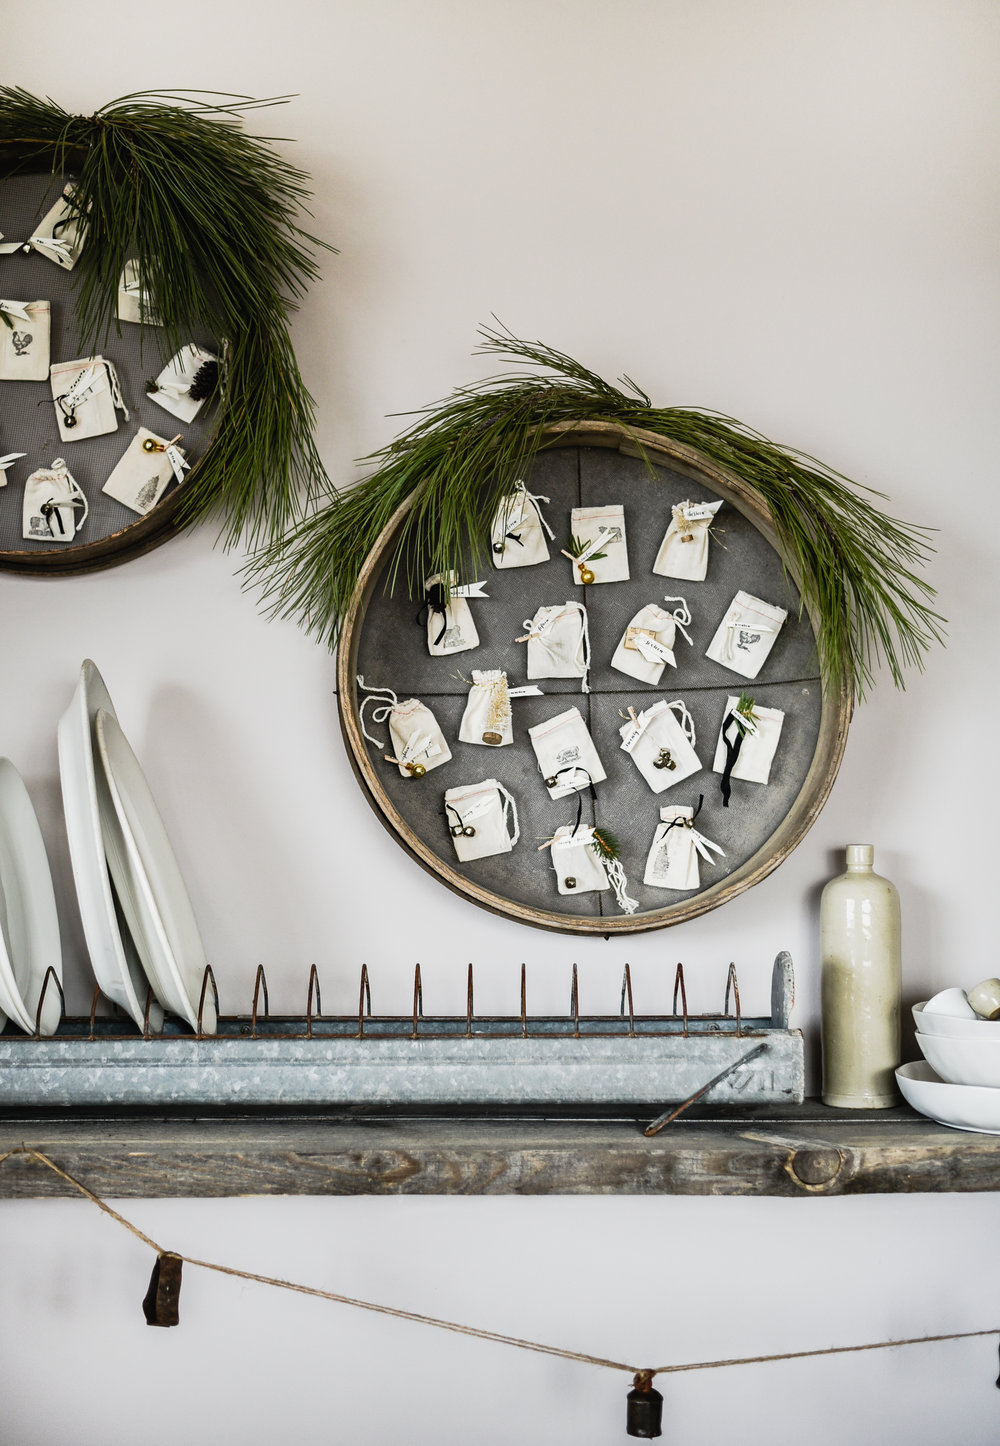 DIY vintage ADVENT CALENDAR - download the free printable labels & inserts